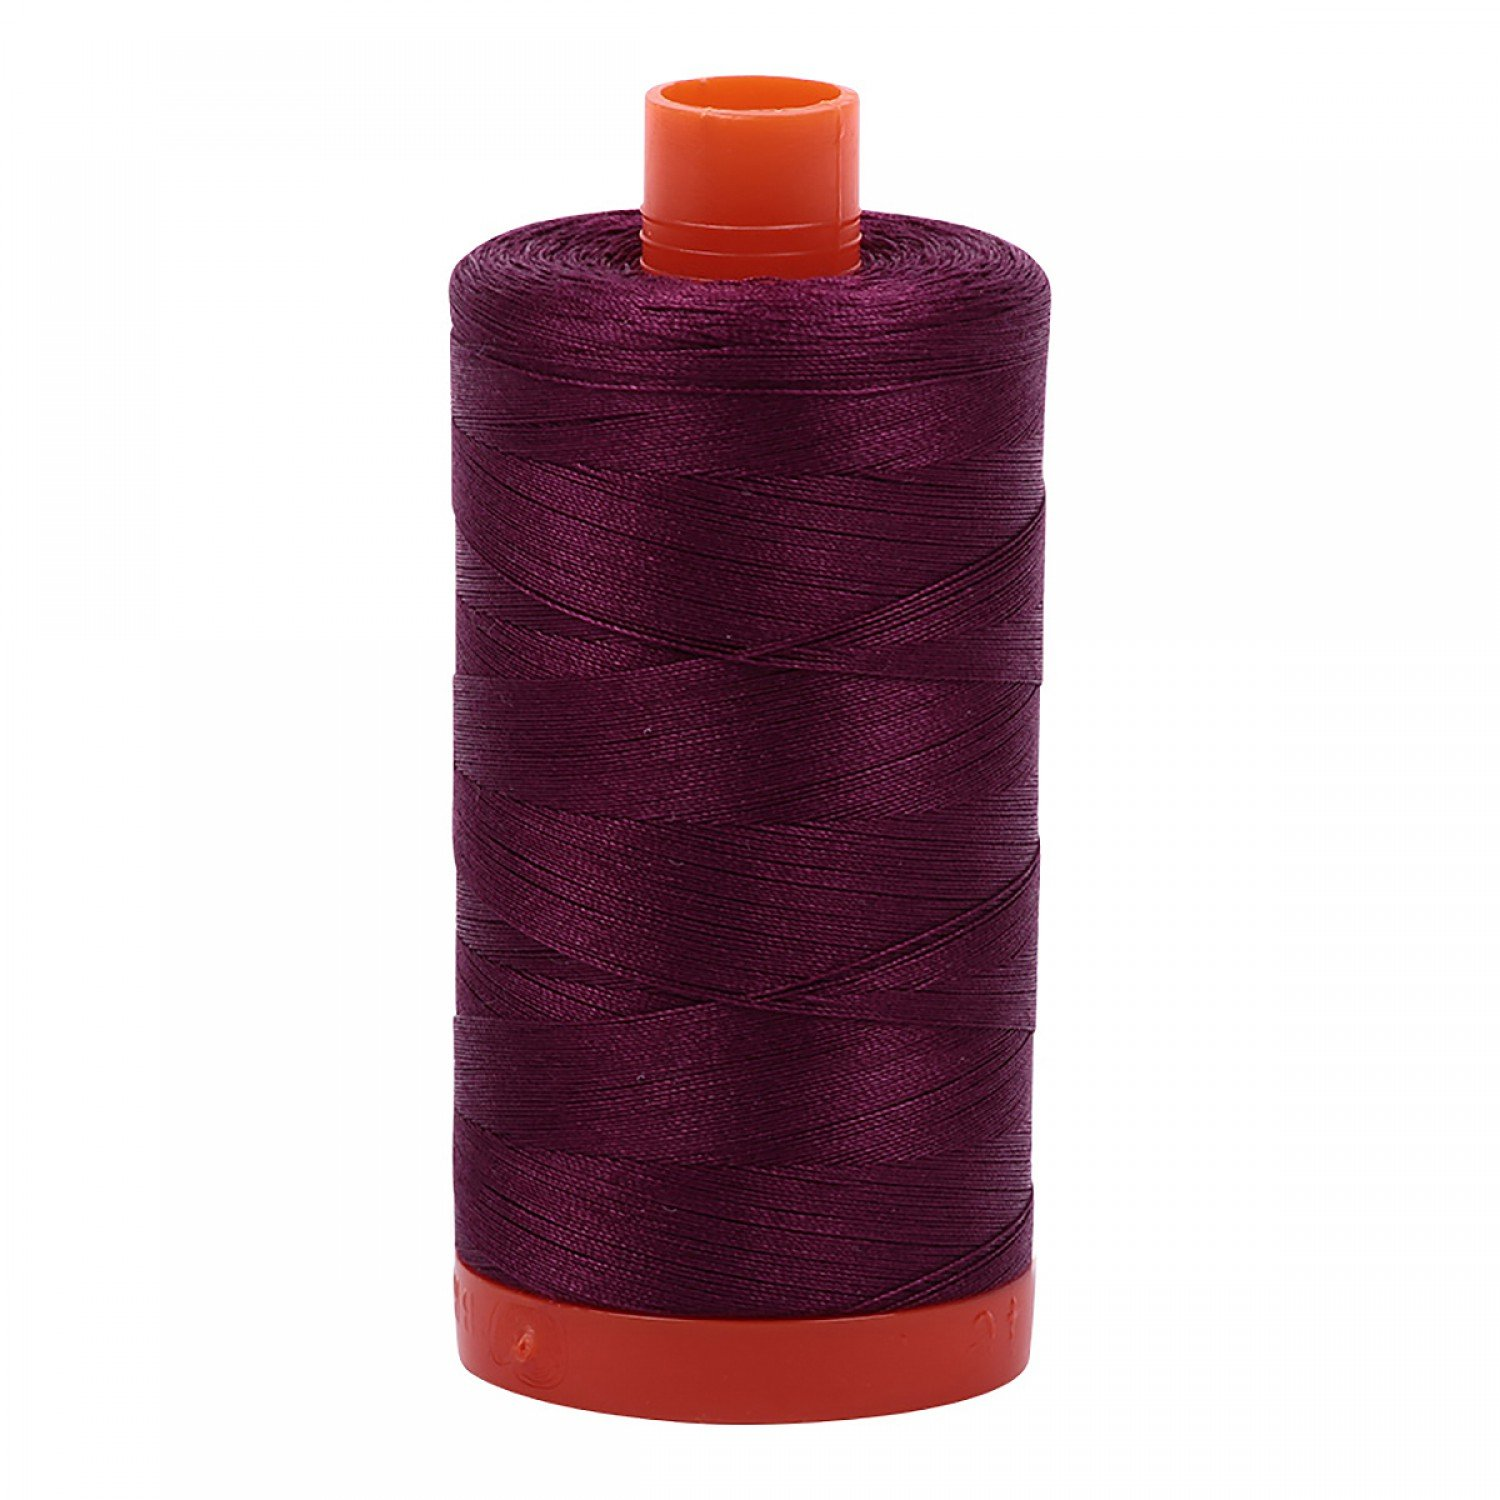 Aurifil 4030 - Mako Cotton Thread Solid 50wt 1422yds Plum